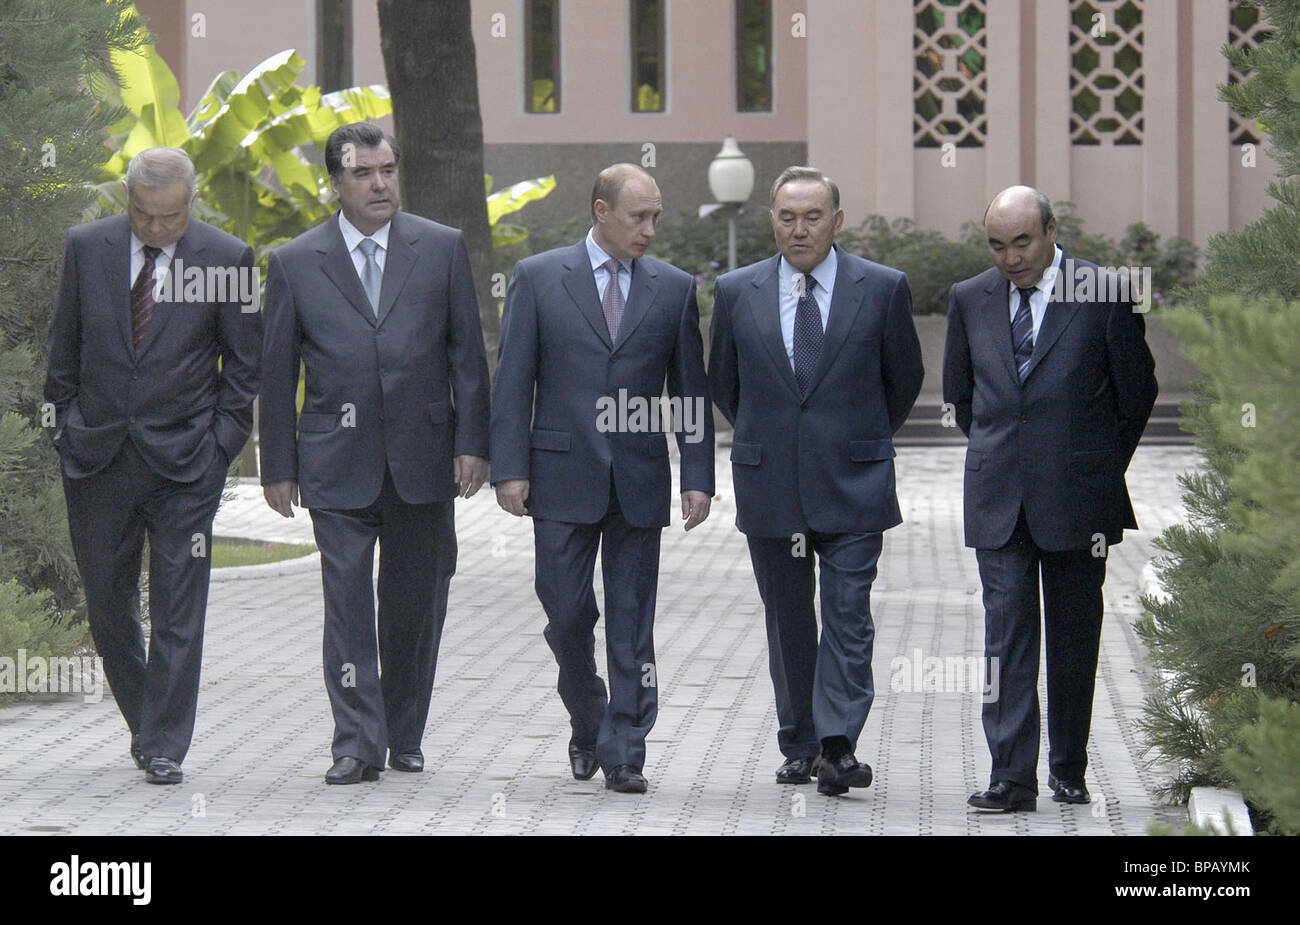 President of Russia participated in Central Asian cooperation summit - Stock Image